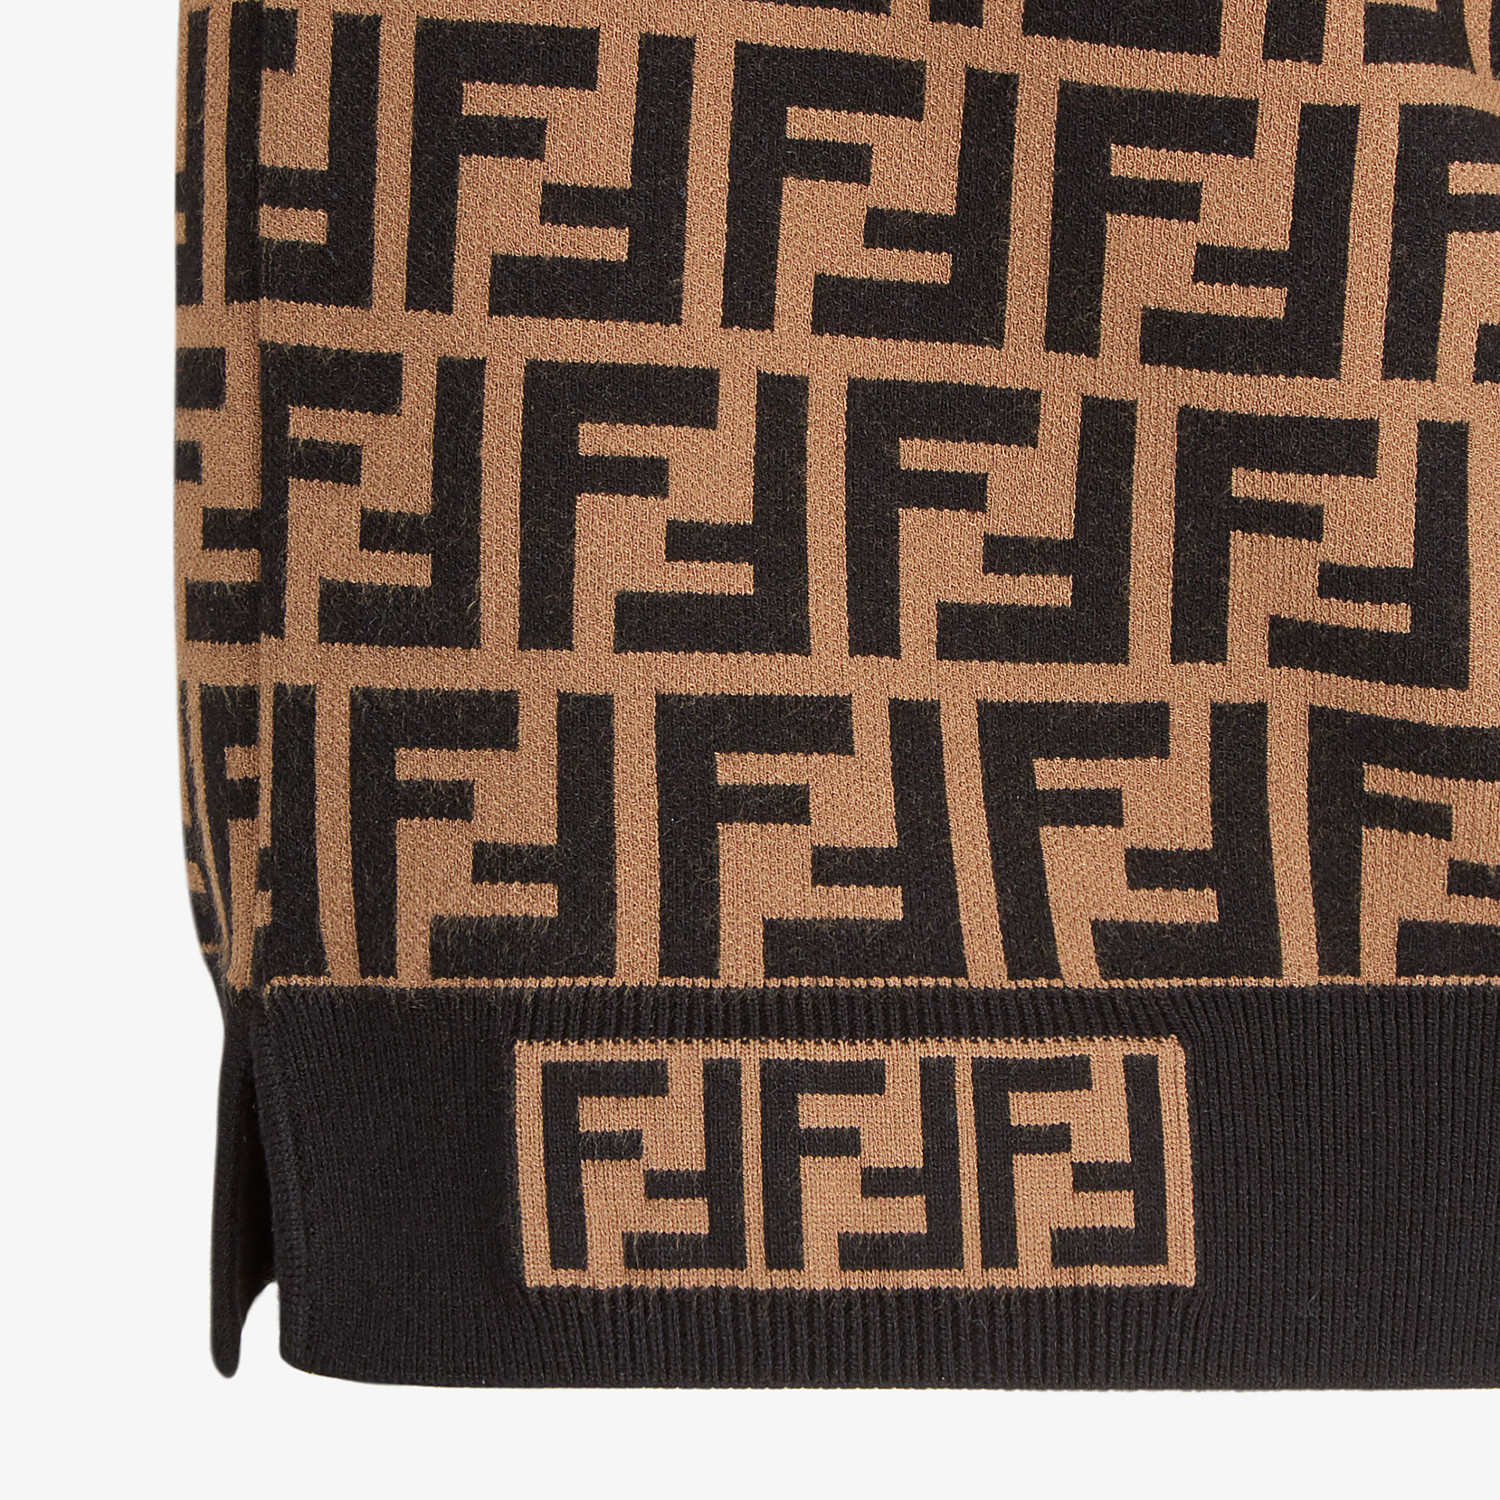 FENDI PULLOVER - Fabric FF motif jumper - view 3 detail